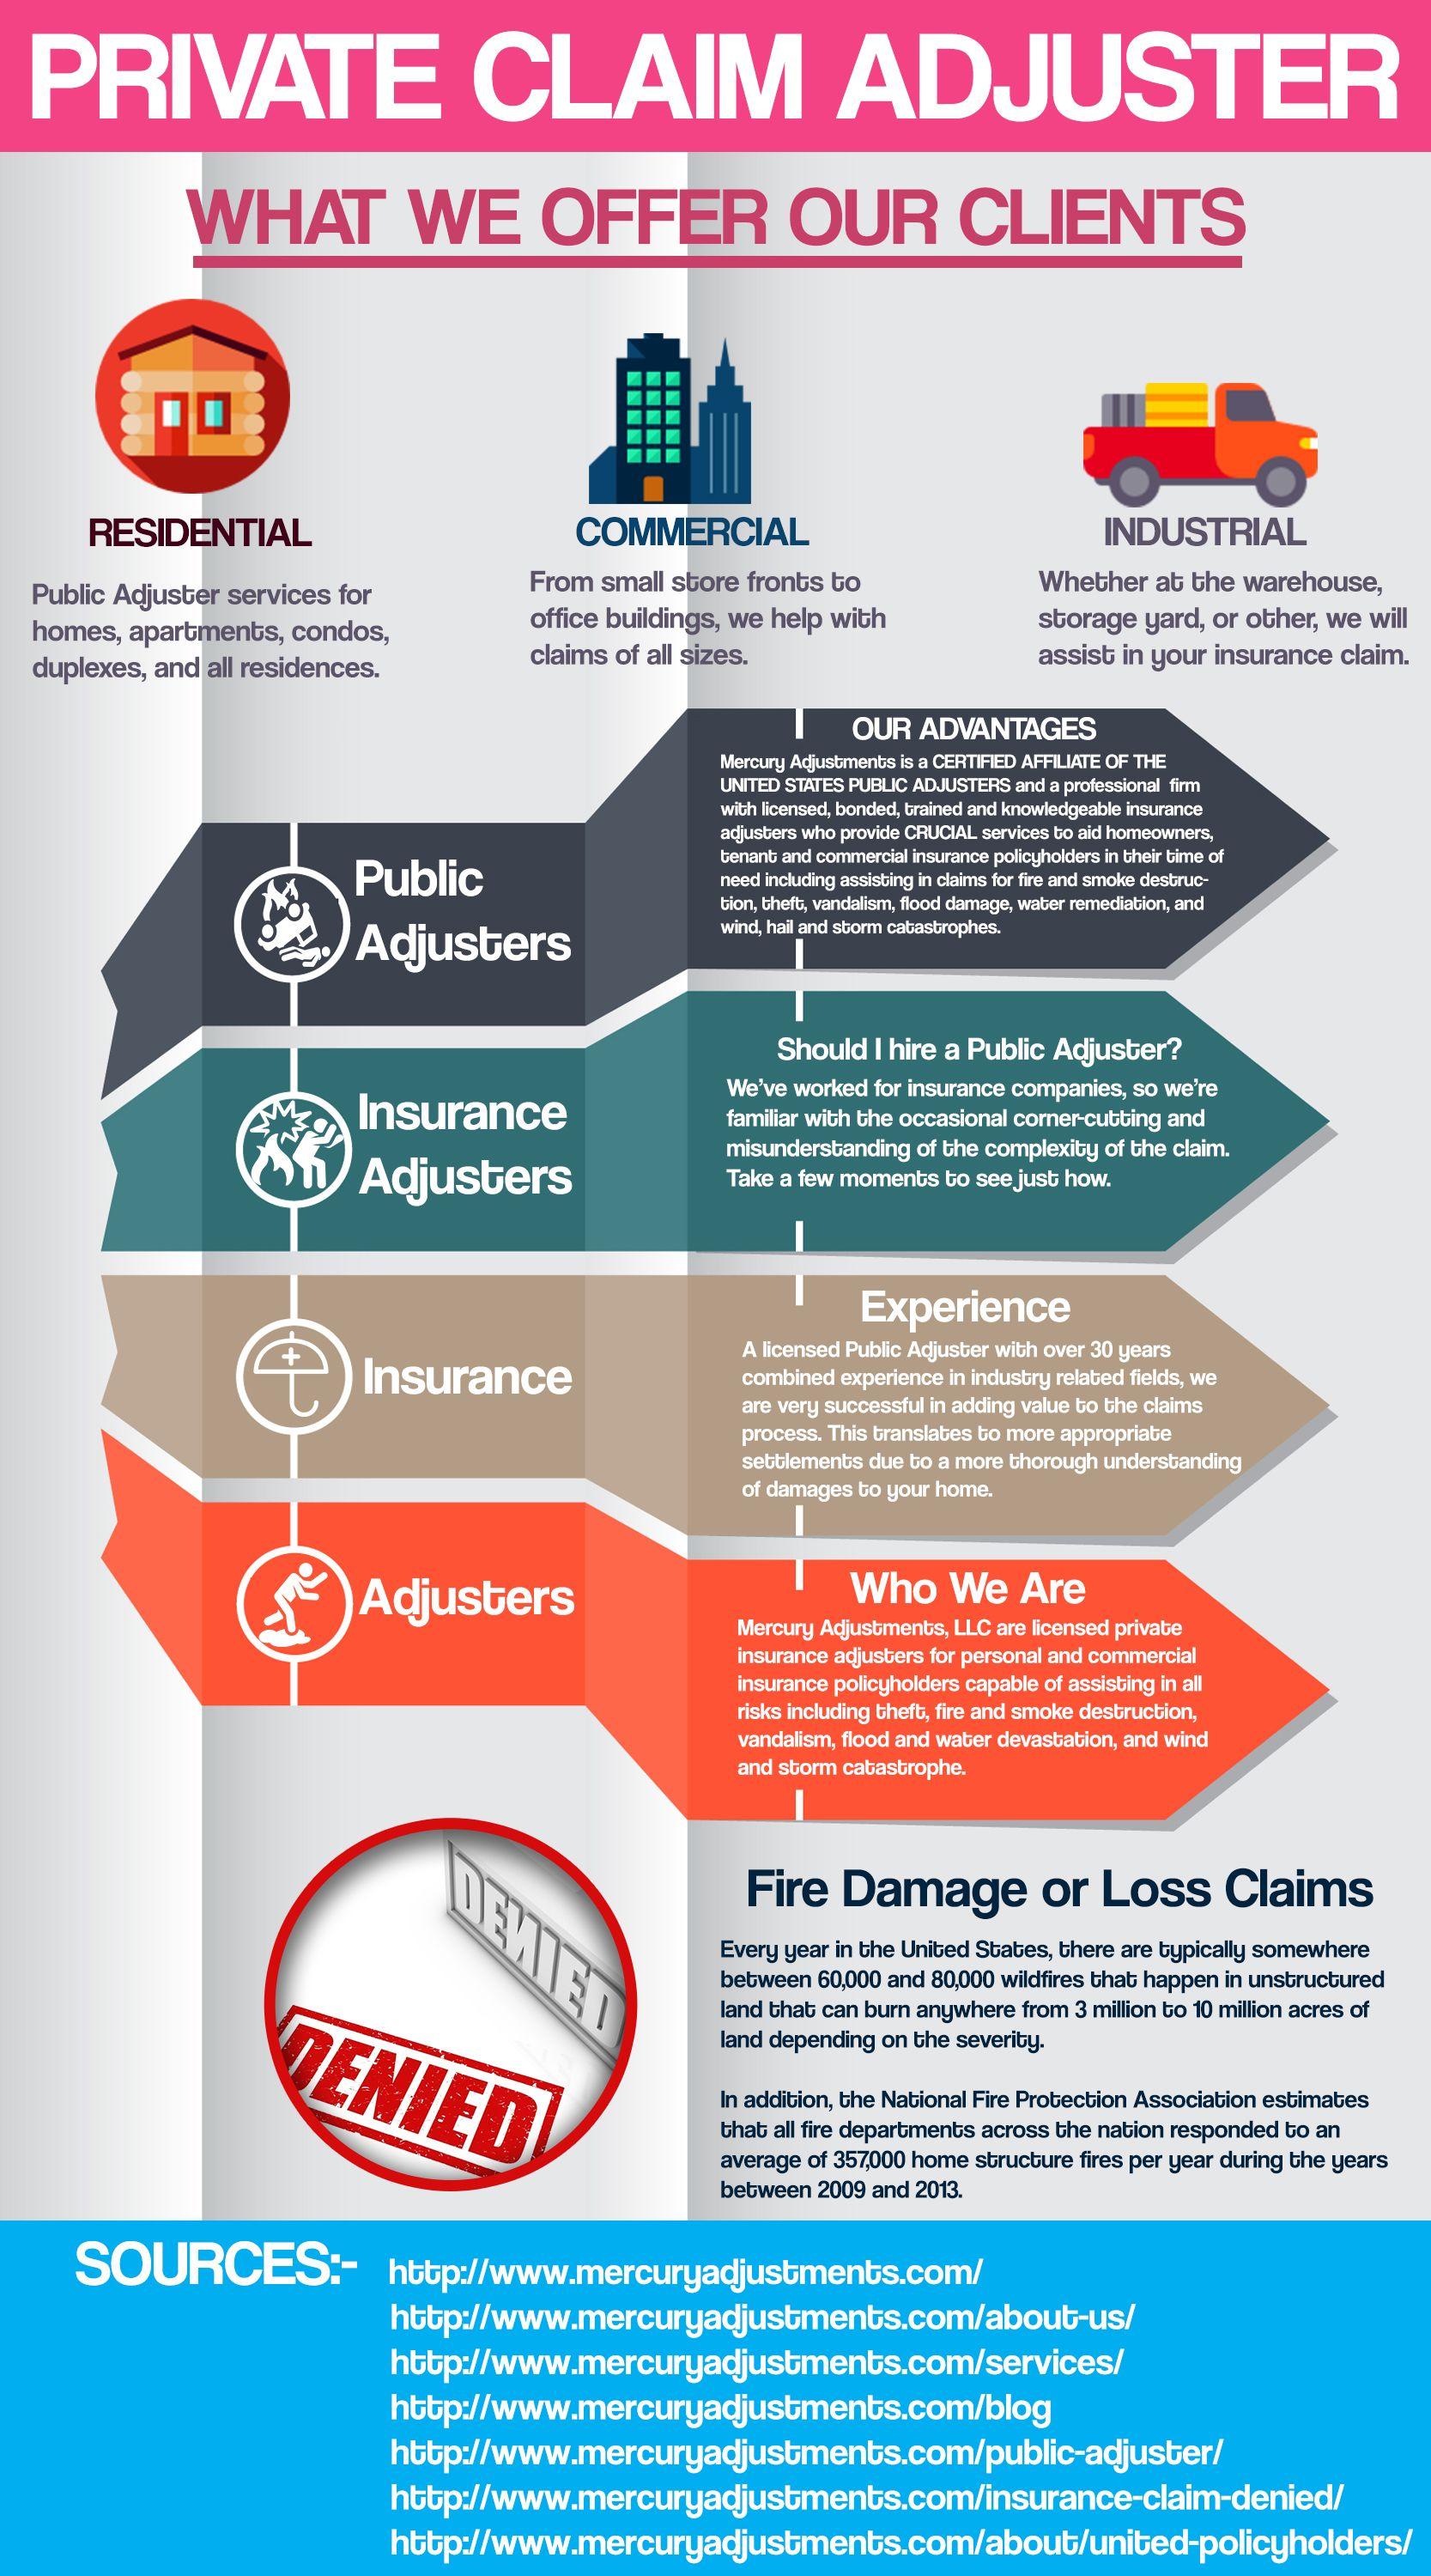 Mercury Adjustments Offer You Licensed Public Insurance Adjusters With Over 30 Years Experience We Are Very Successful To Add Public Insurance Claim Insurance